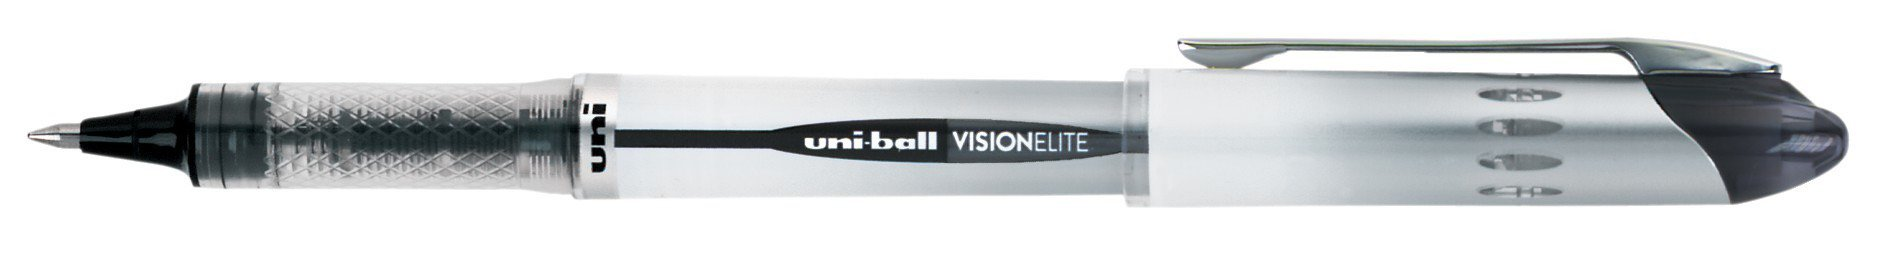 uni-ball Vision Elite Rollerball Pens, Bold Point (0.8mm), Black by Uni-ball (Image #4)